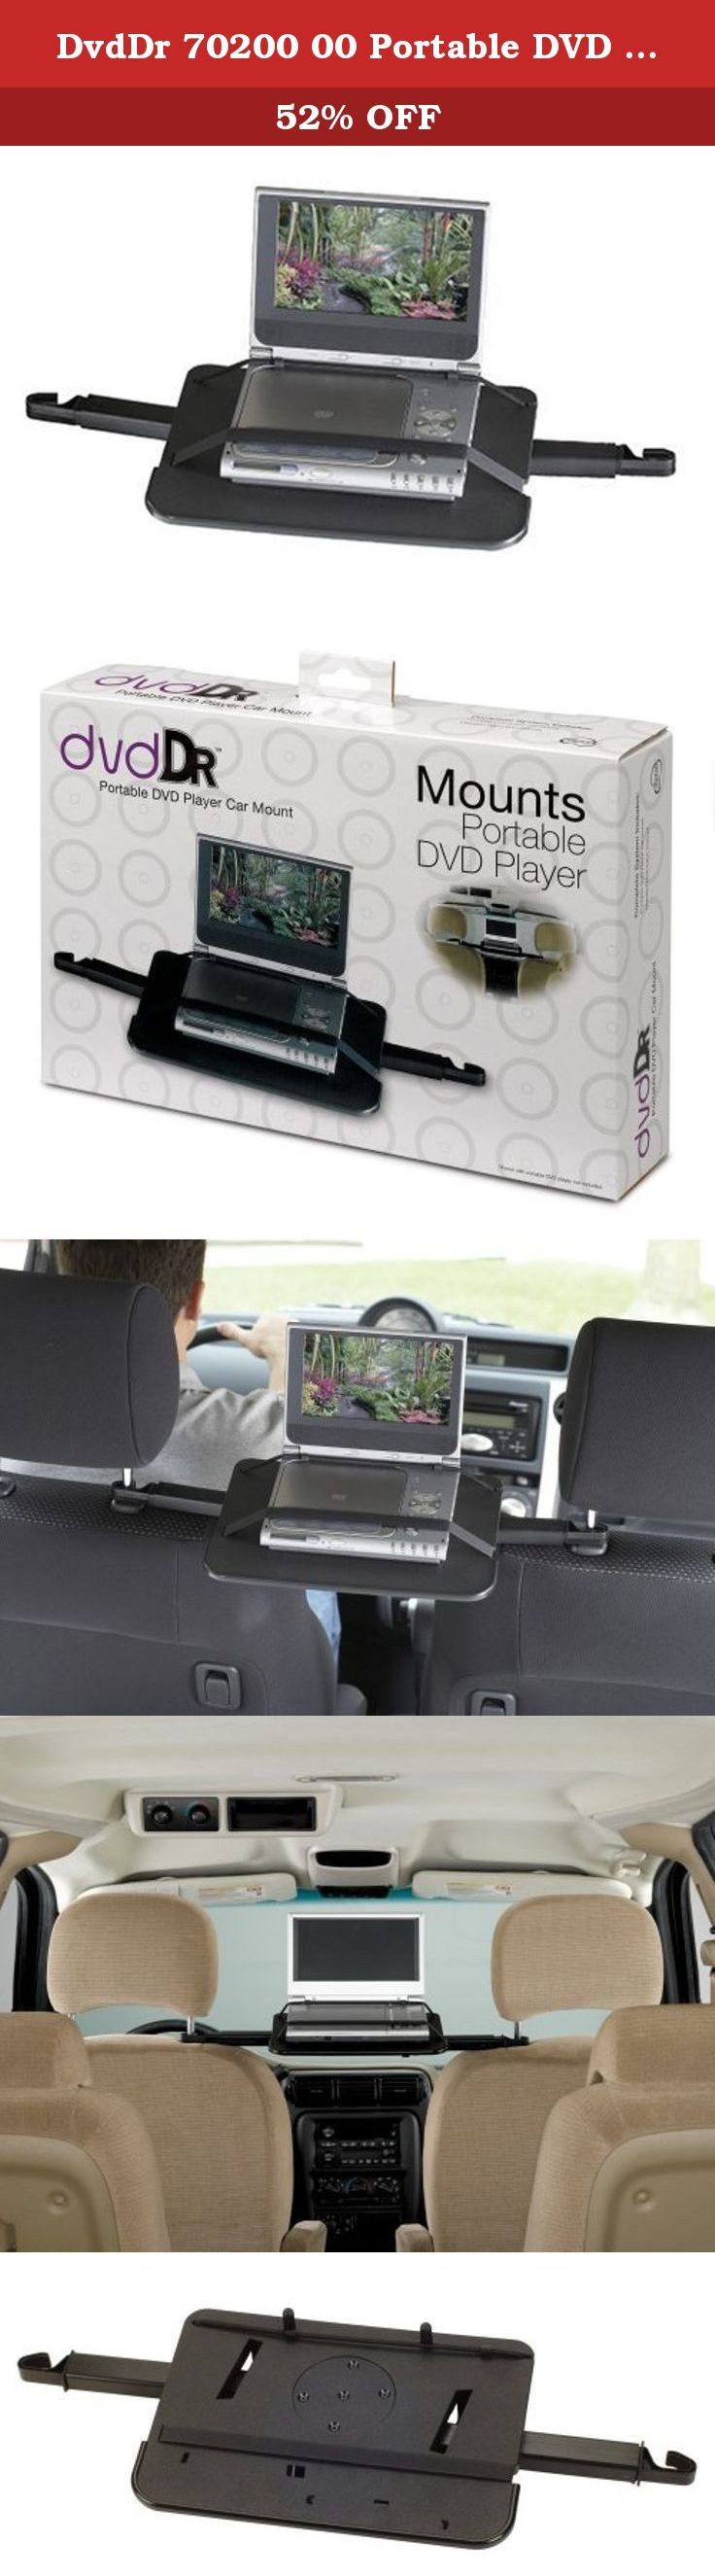 Dvddr 70200 00 portable dvd player car mount quick and easy way to secure portable dvd player in a carcompatible with portable dvd players with screens up